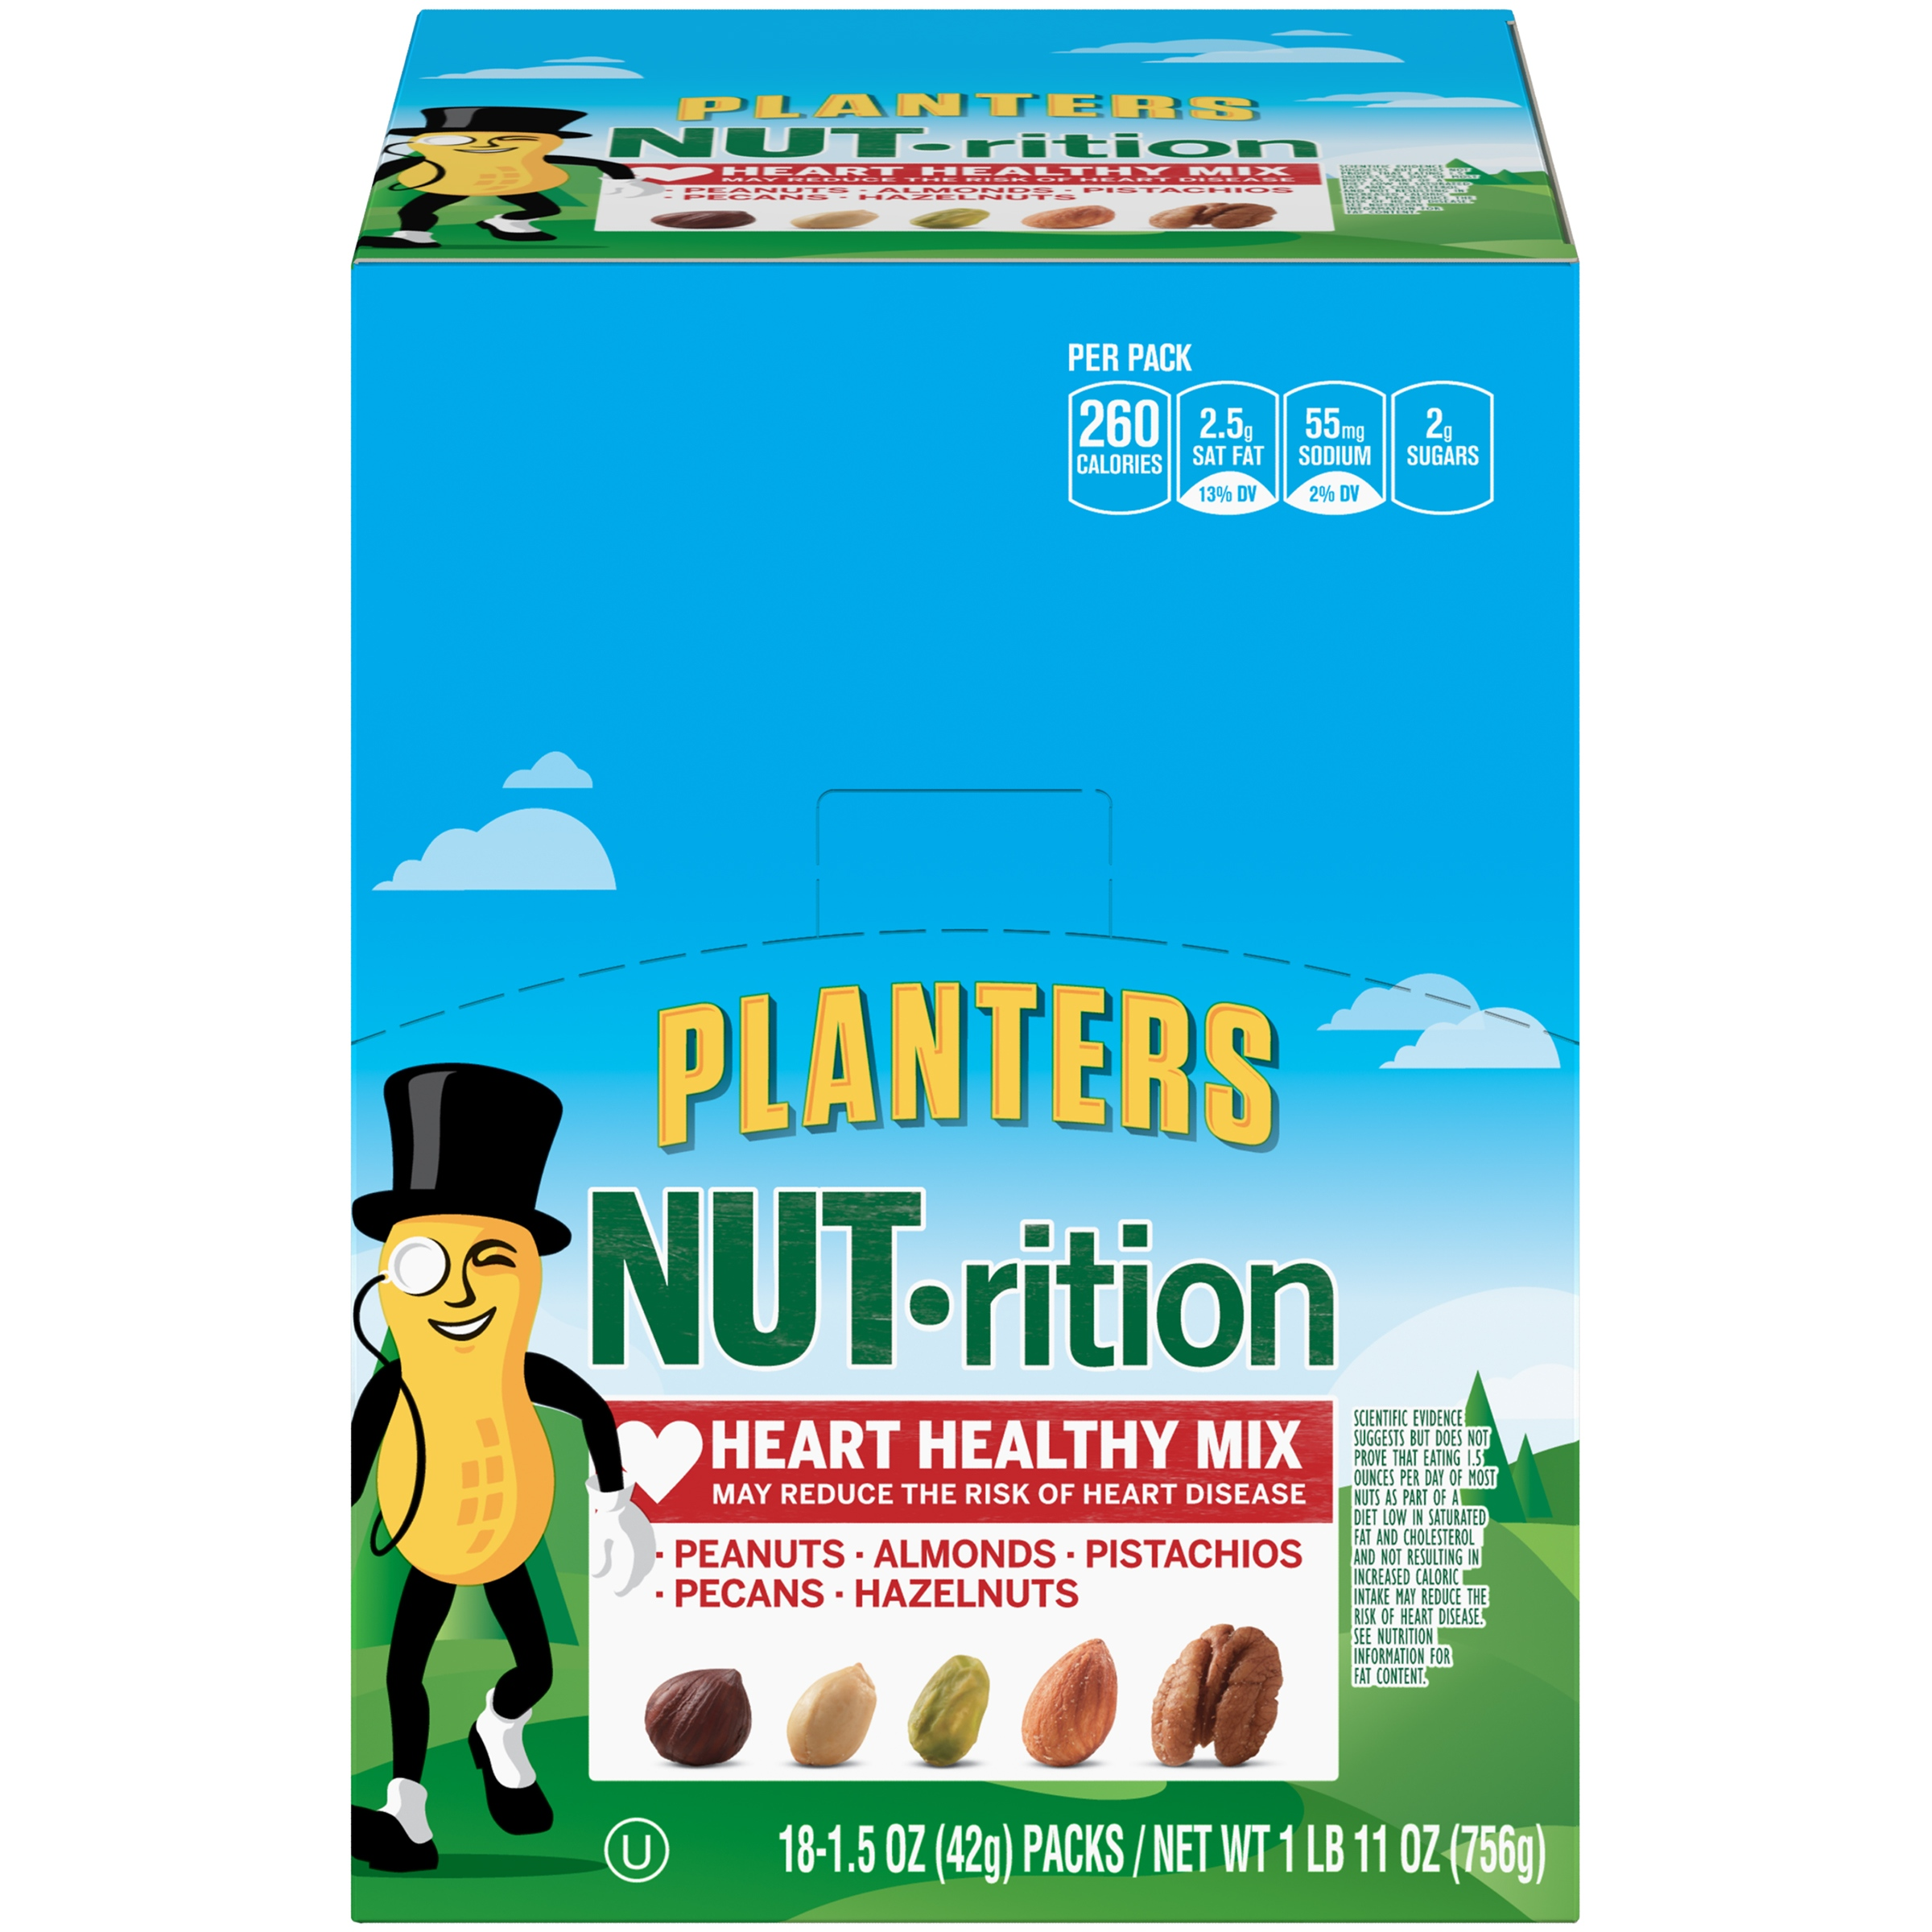 Planters NUT-rition Heart Healthy Mix 18-1.5 oz. Packs